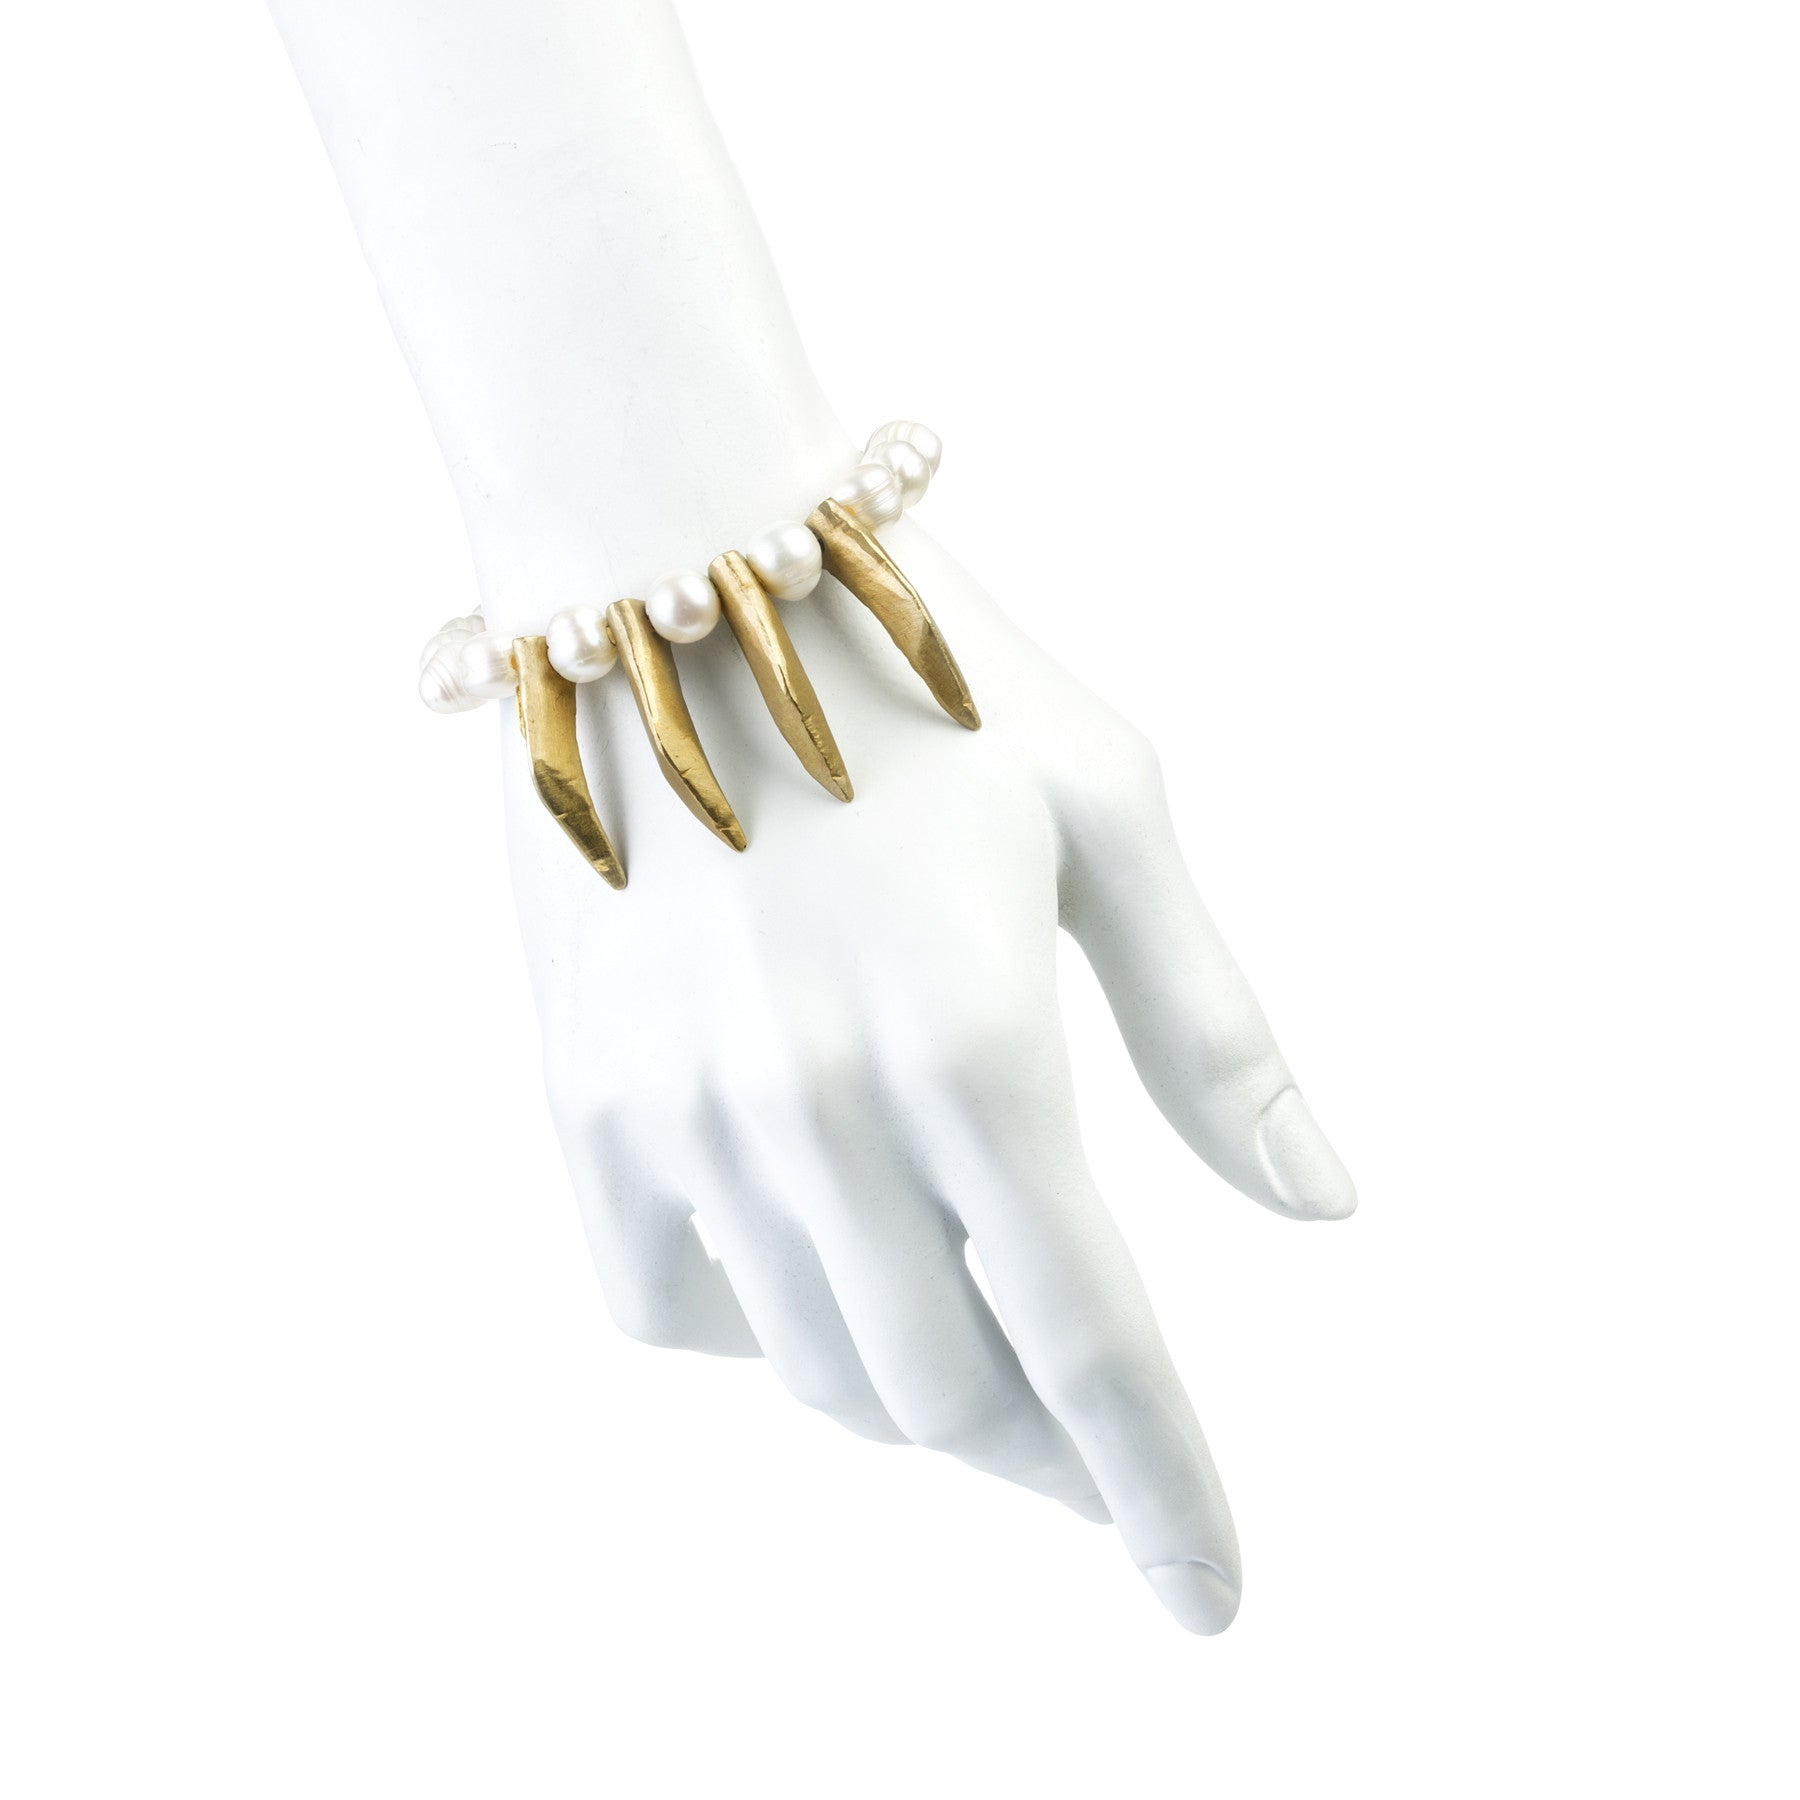 4 CLAWS AND PEARLS